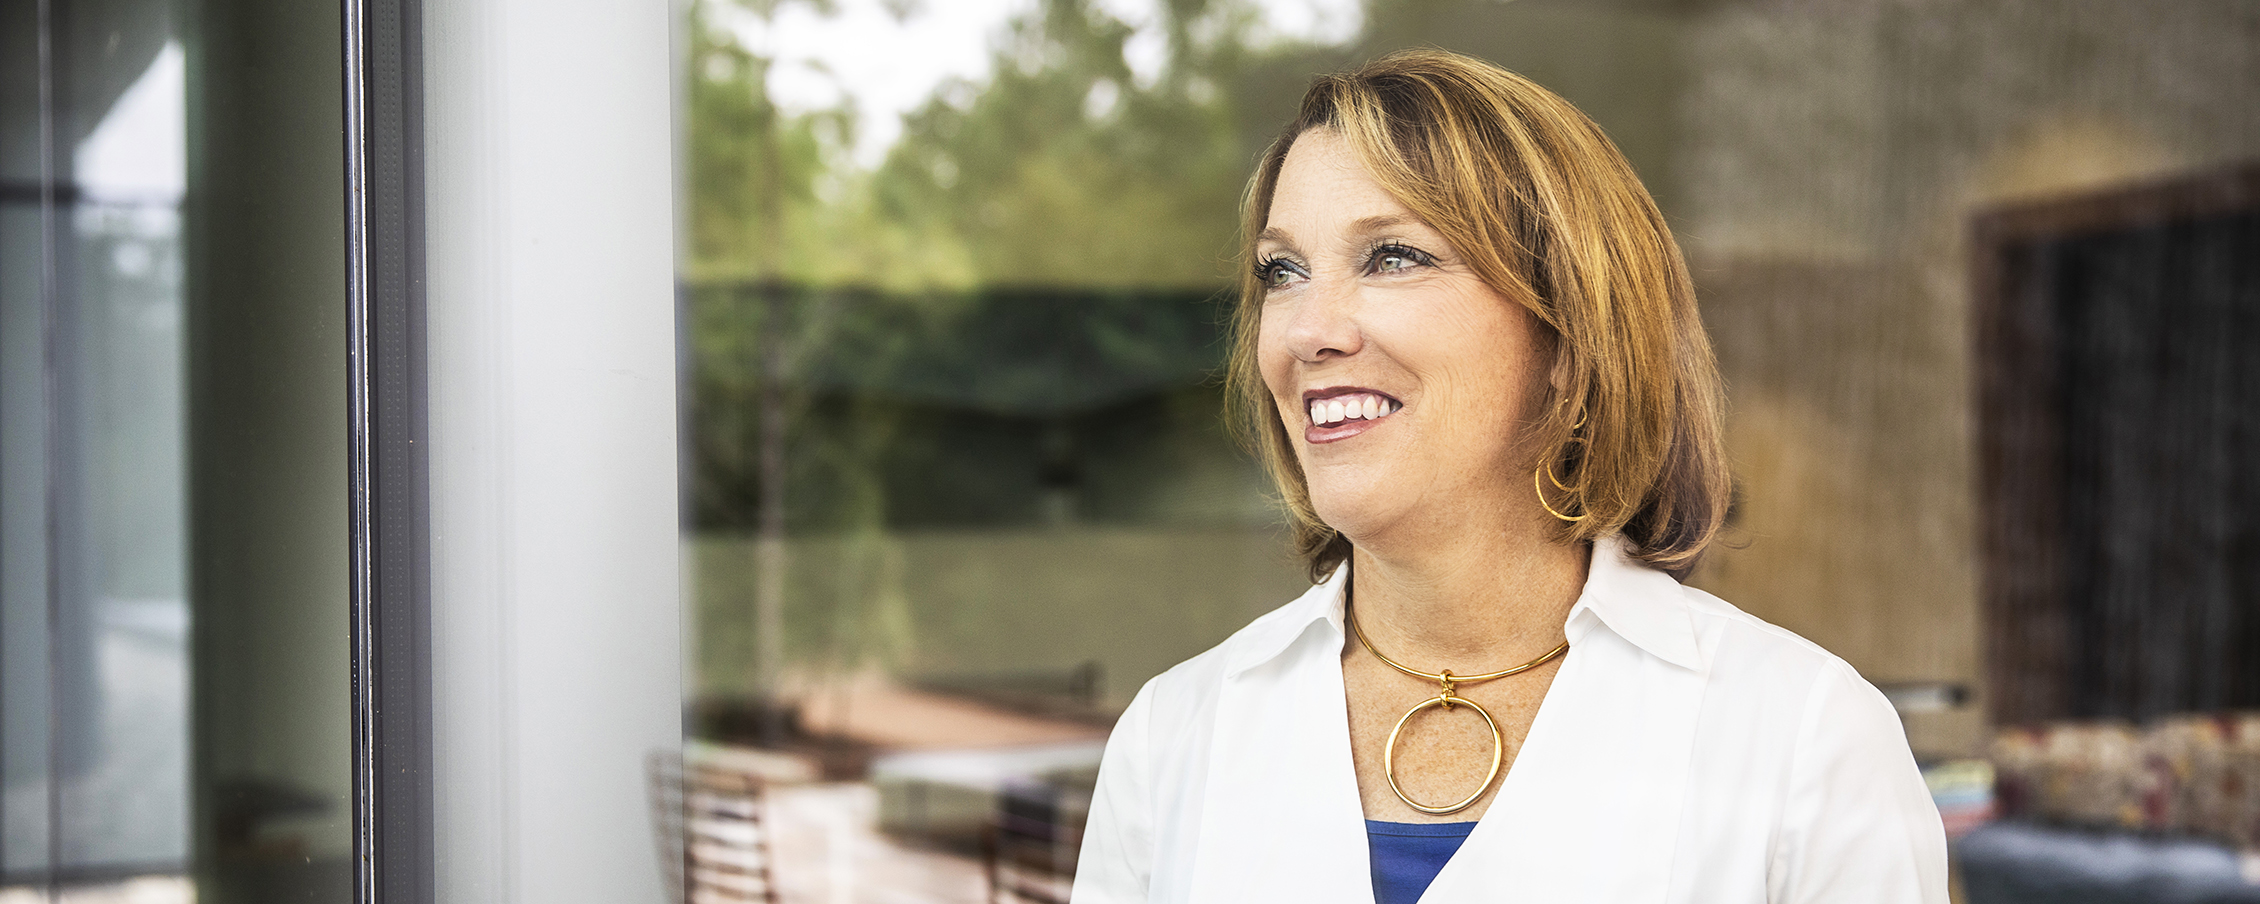 Jenny McCauley Knows She's Meant To Be at Southwestern Energy